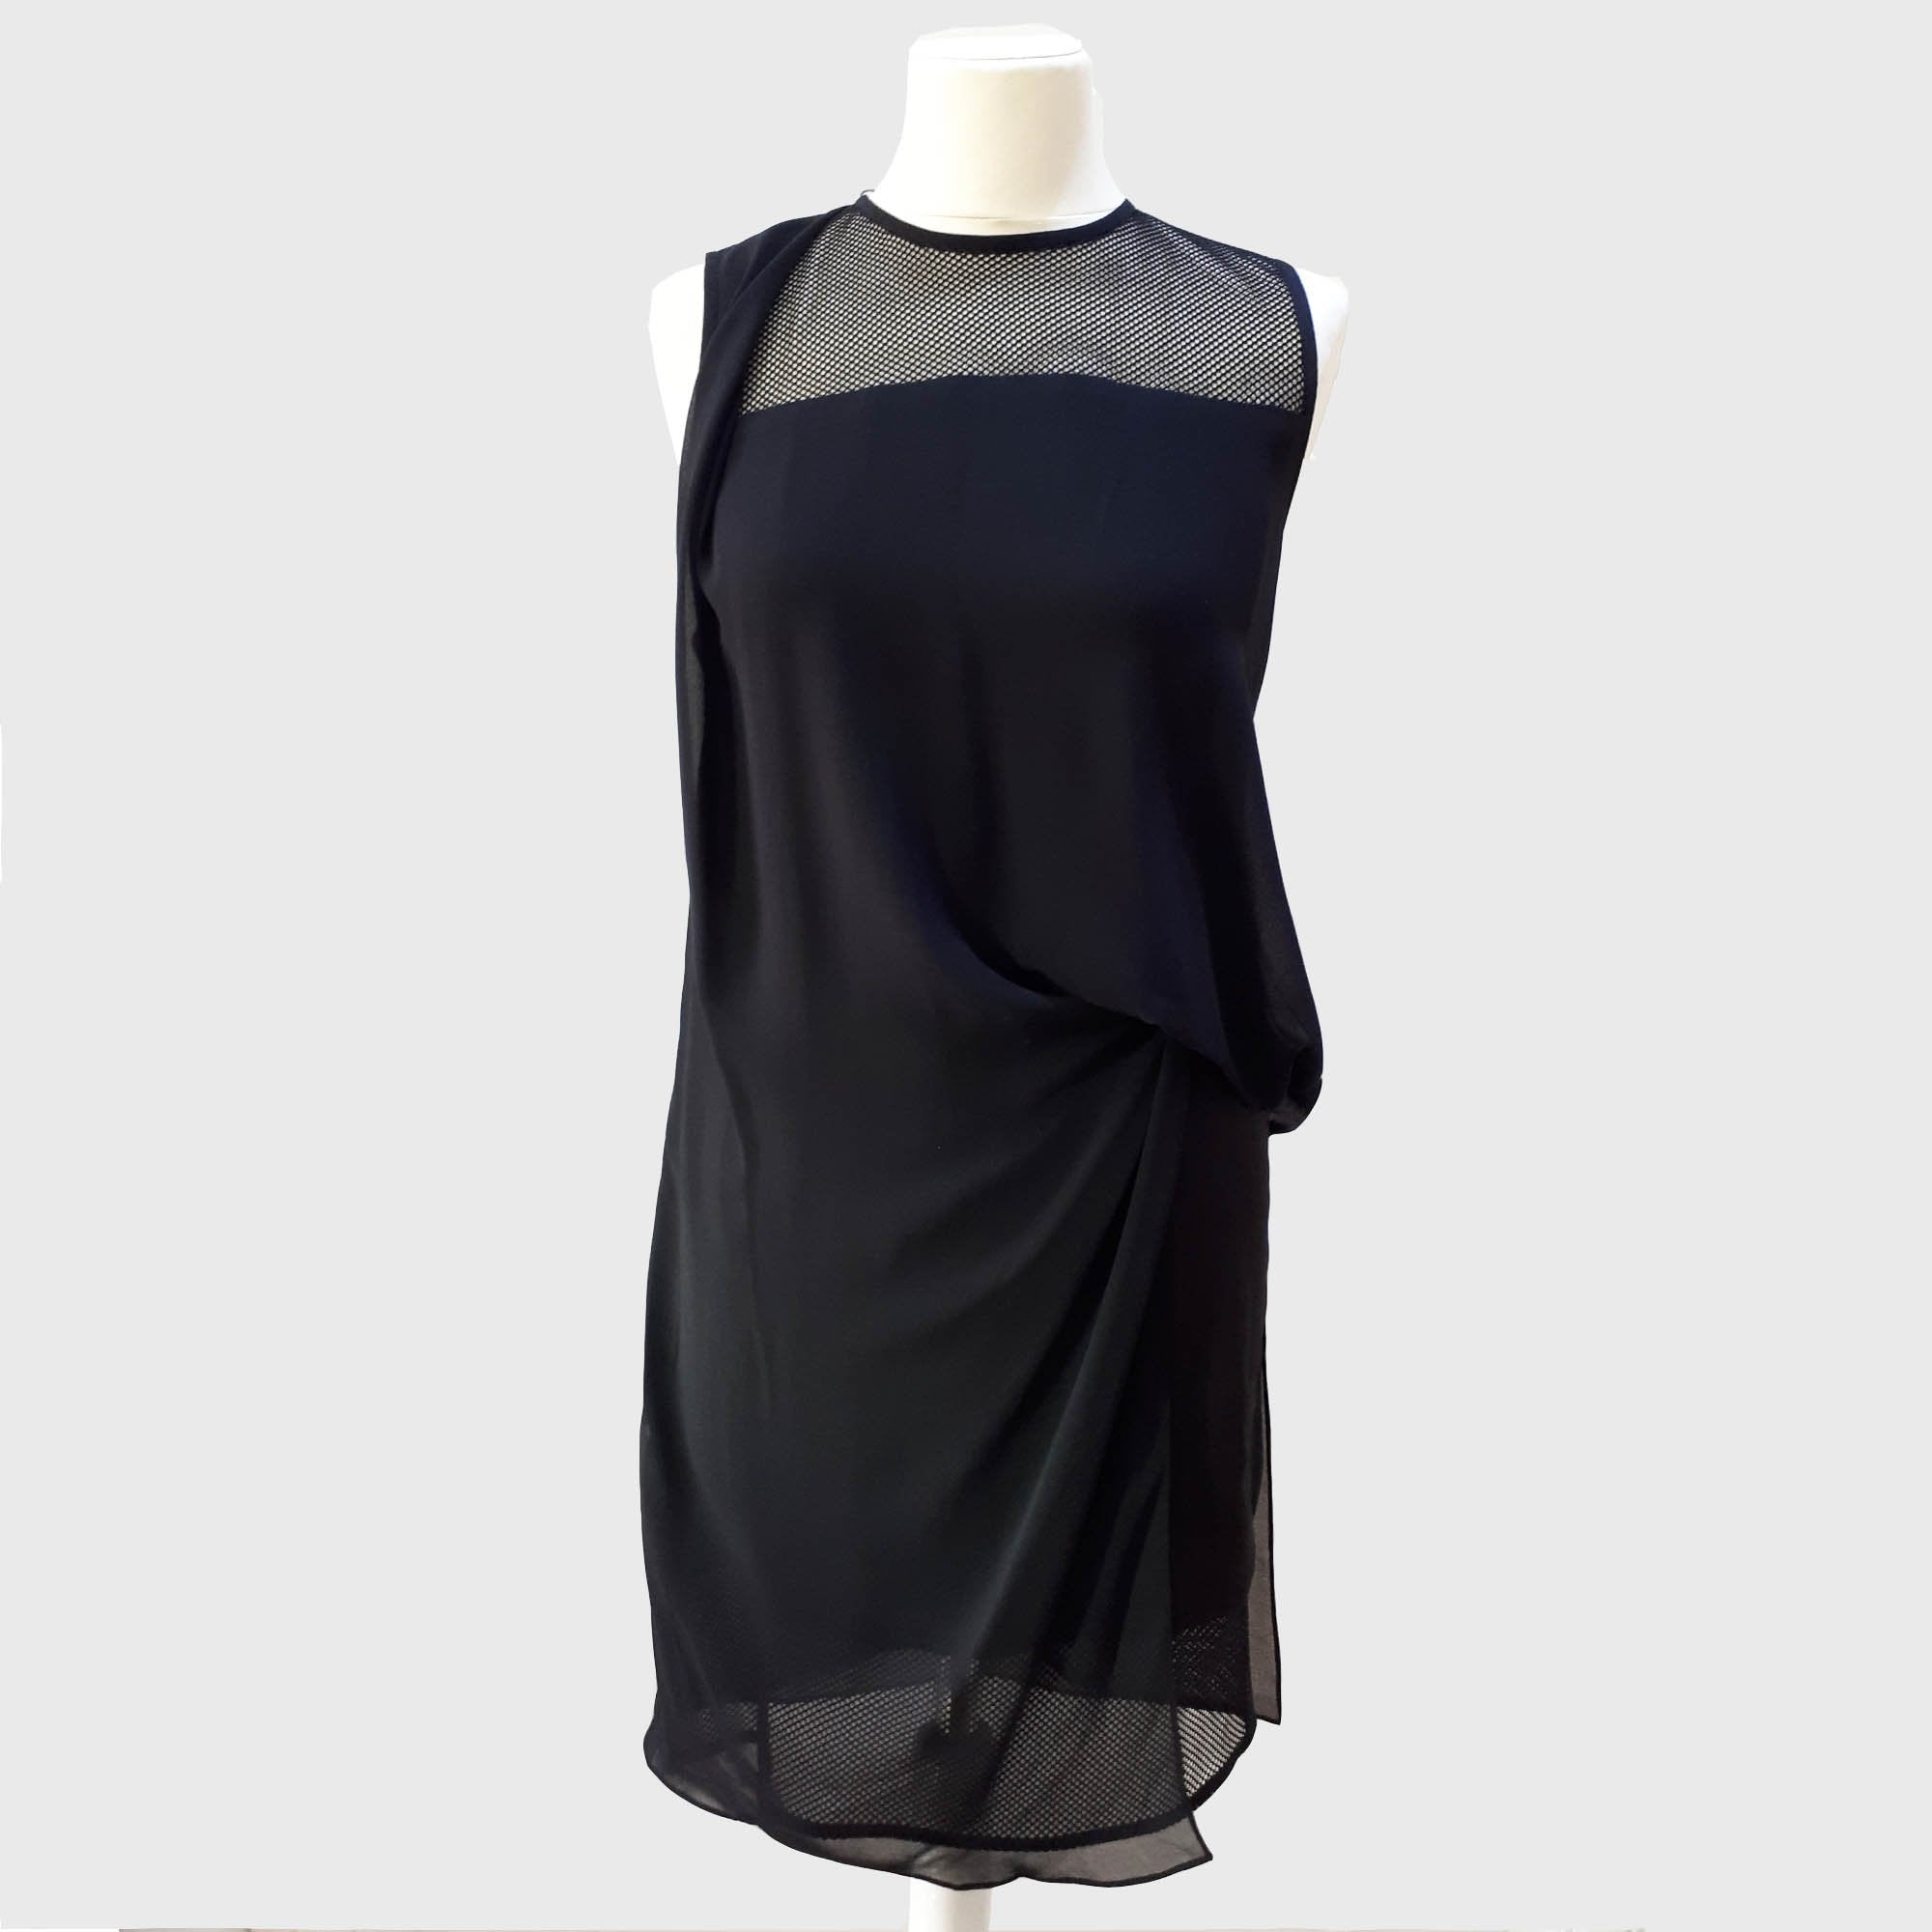 Sandro Black Dress with Net Detailing